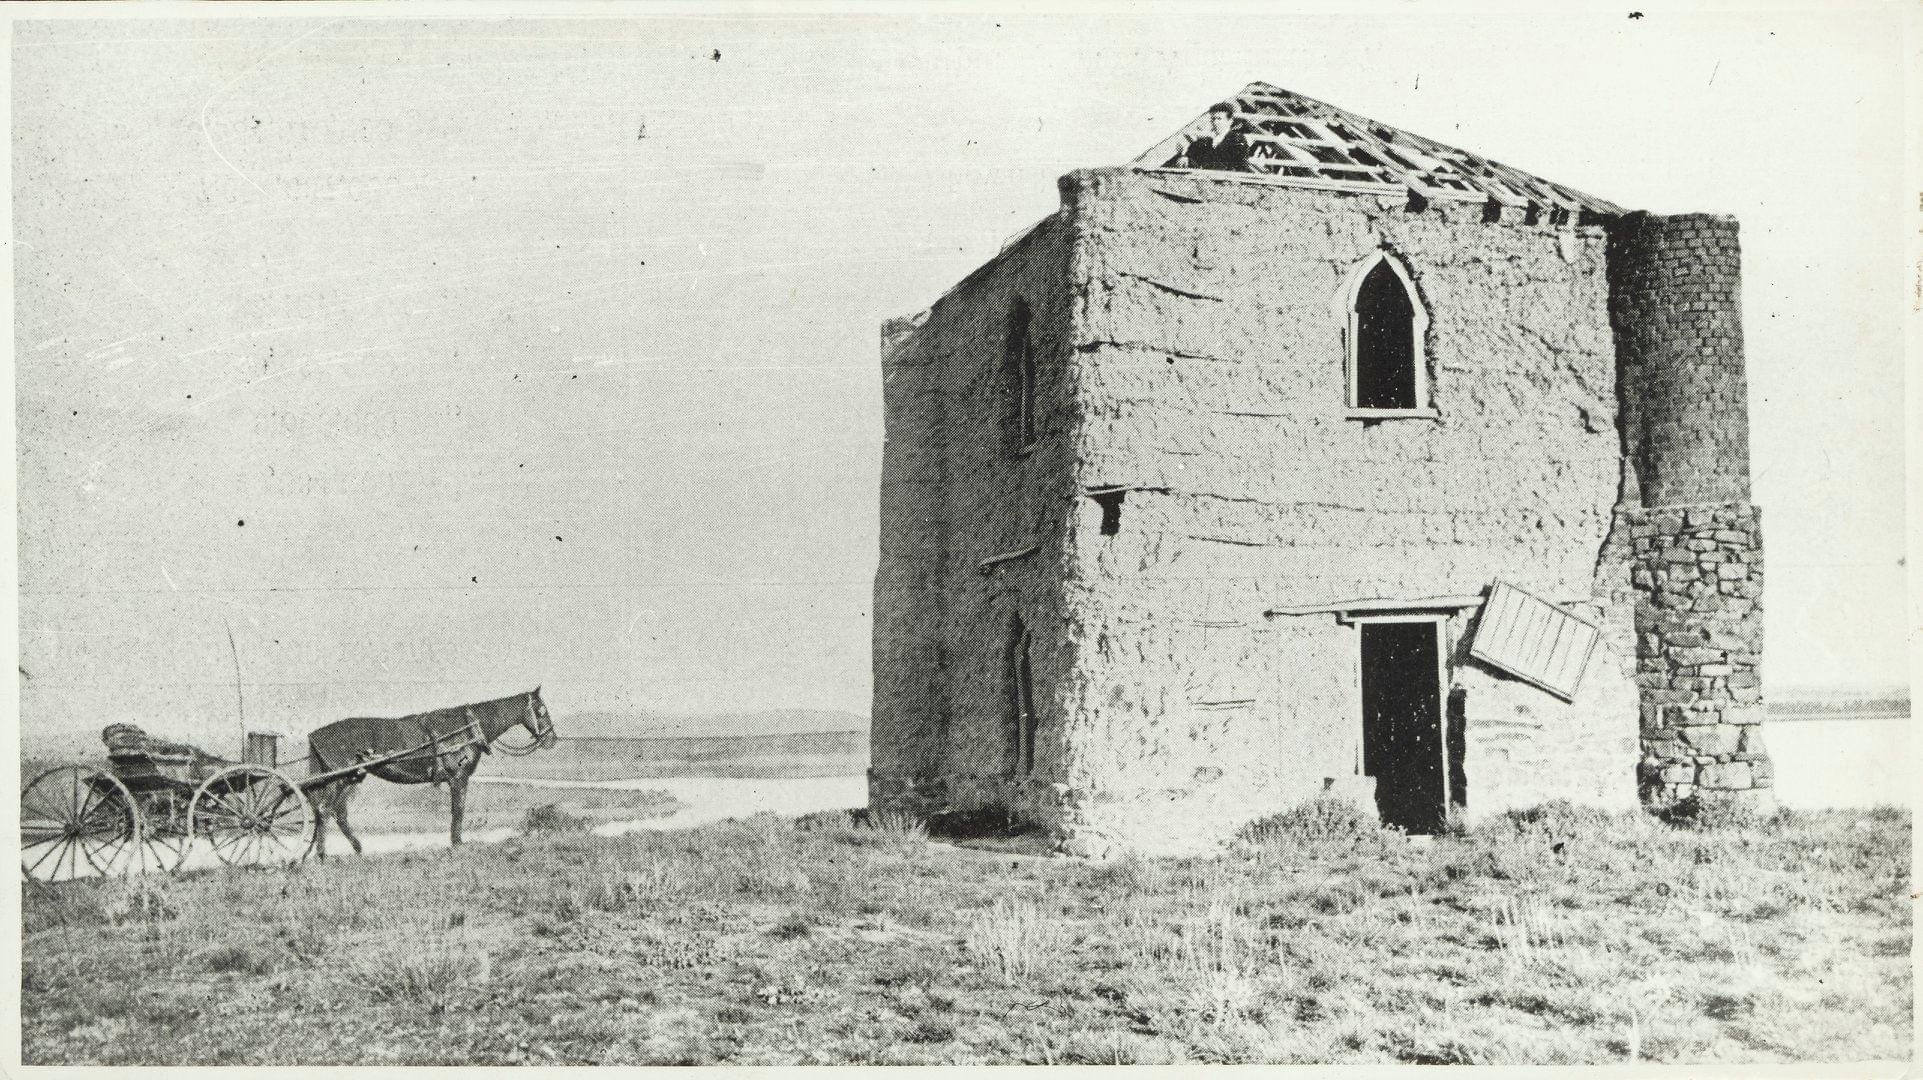 Bear's Castle is reputed to have been built in the 1840s.  It is pictured here in the late 19th century